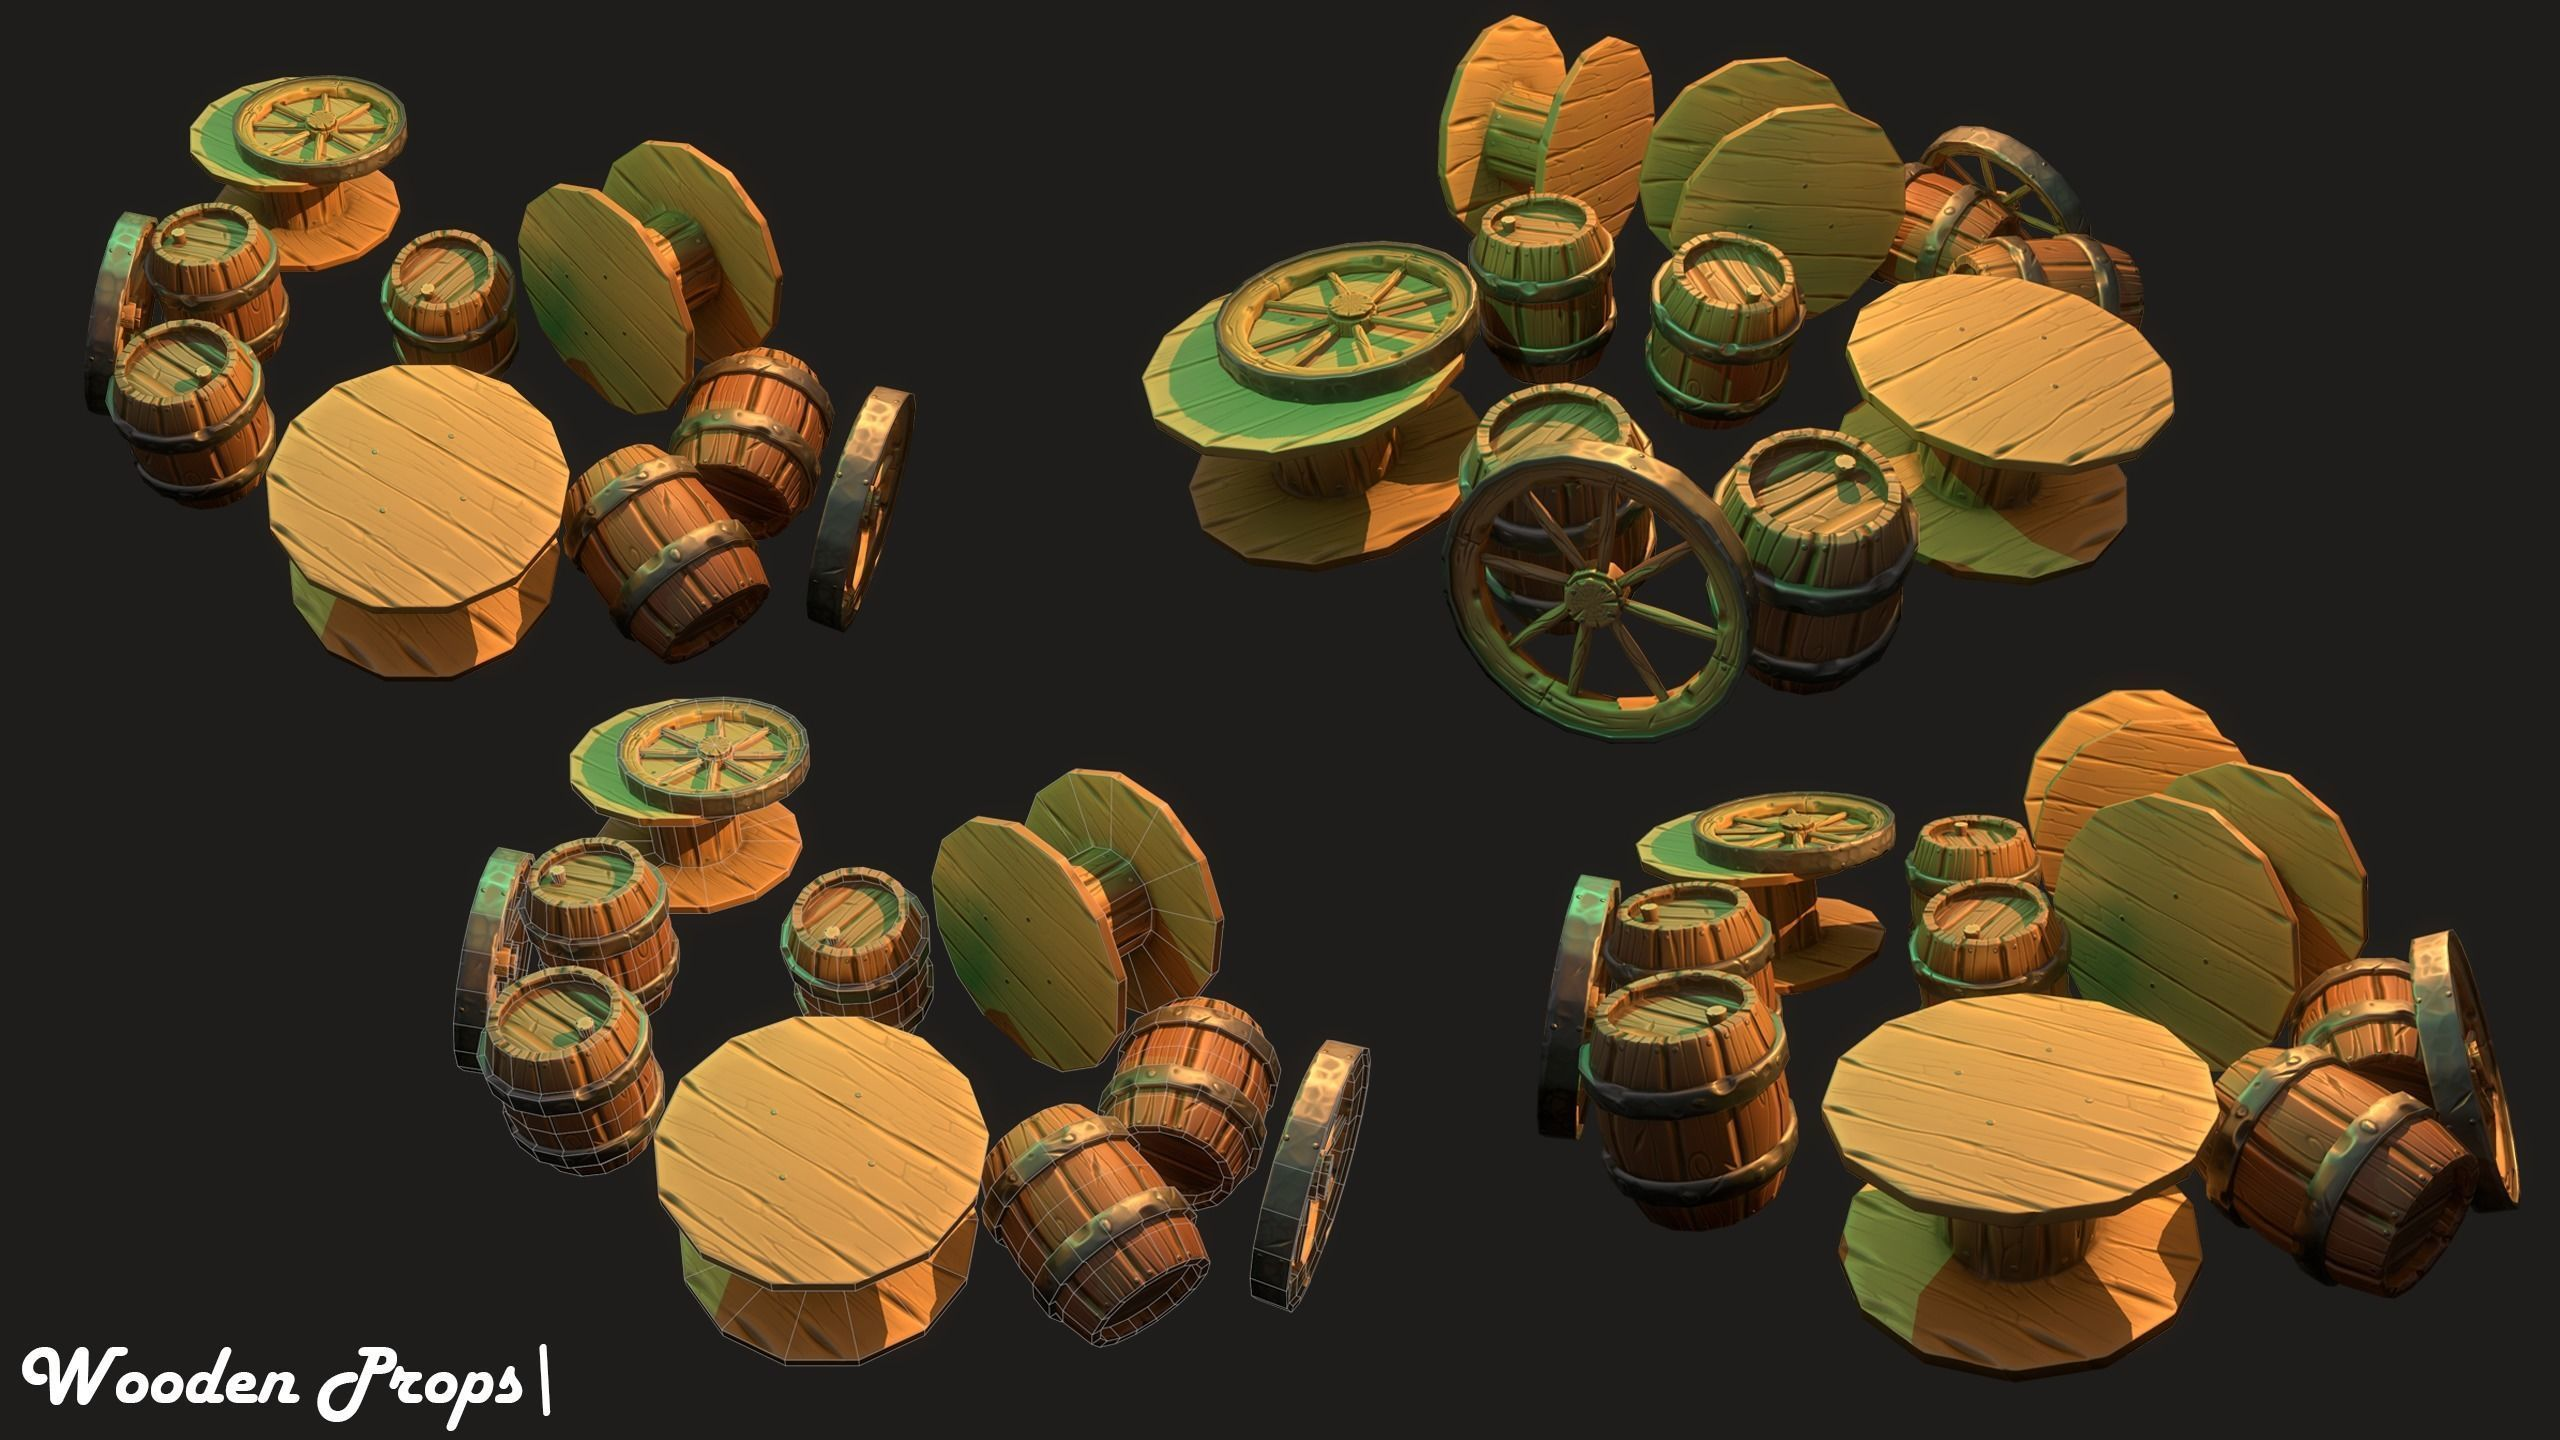 Stylized Wooden Props